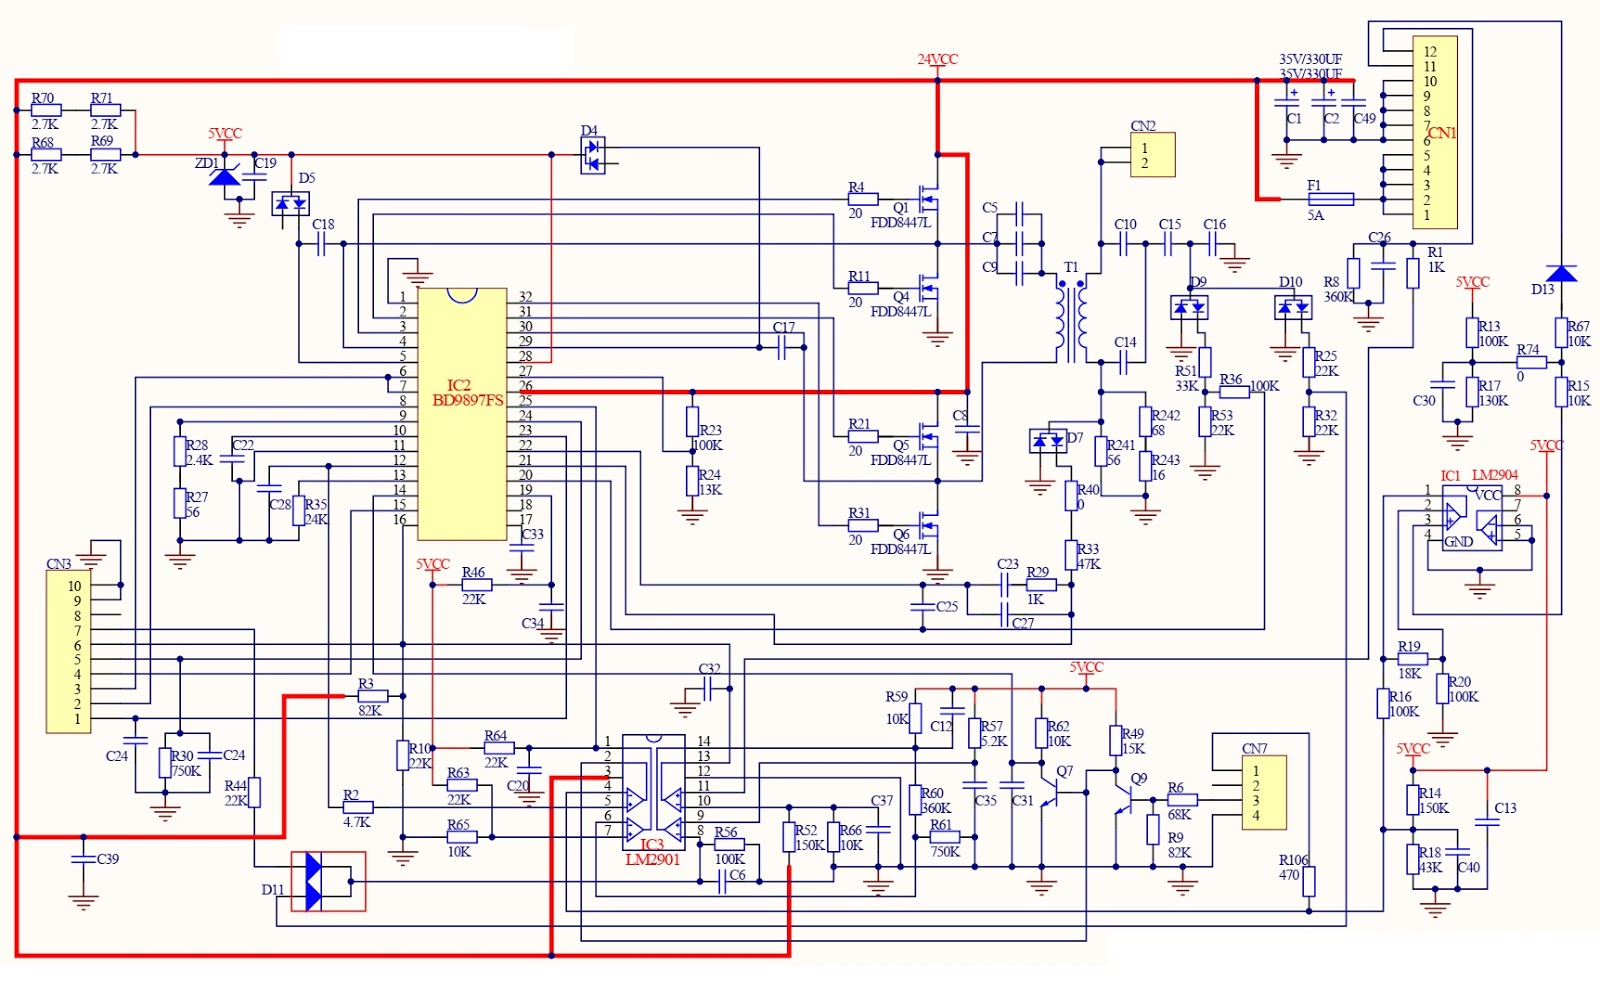 small resolution of vizio lg and tcl lcd tv smps schematics schematic diagrams 42 vizio tv schematic diagram